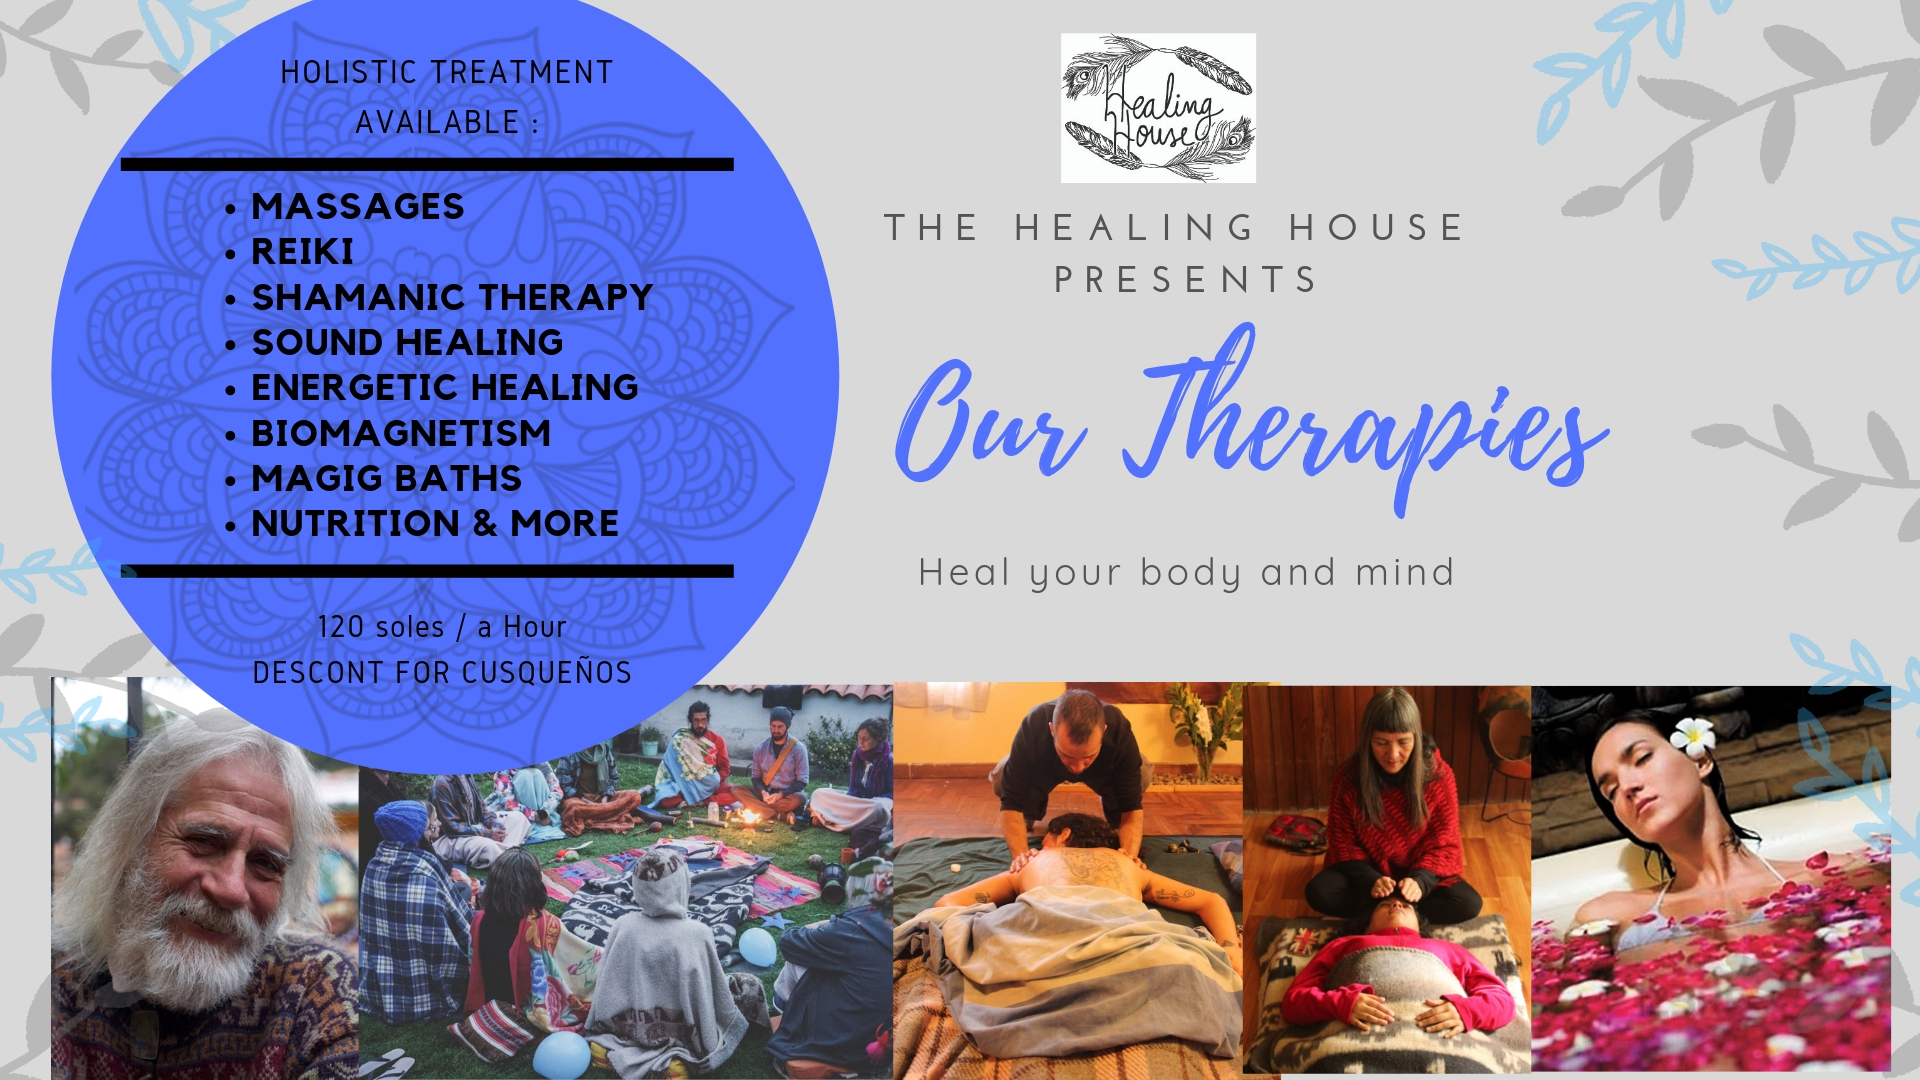 Heal your body and mind: Massage, Reiki, Sound Healing and more